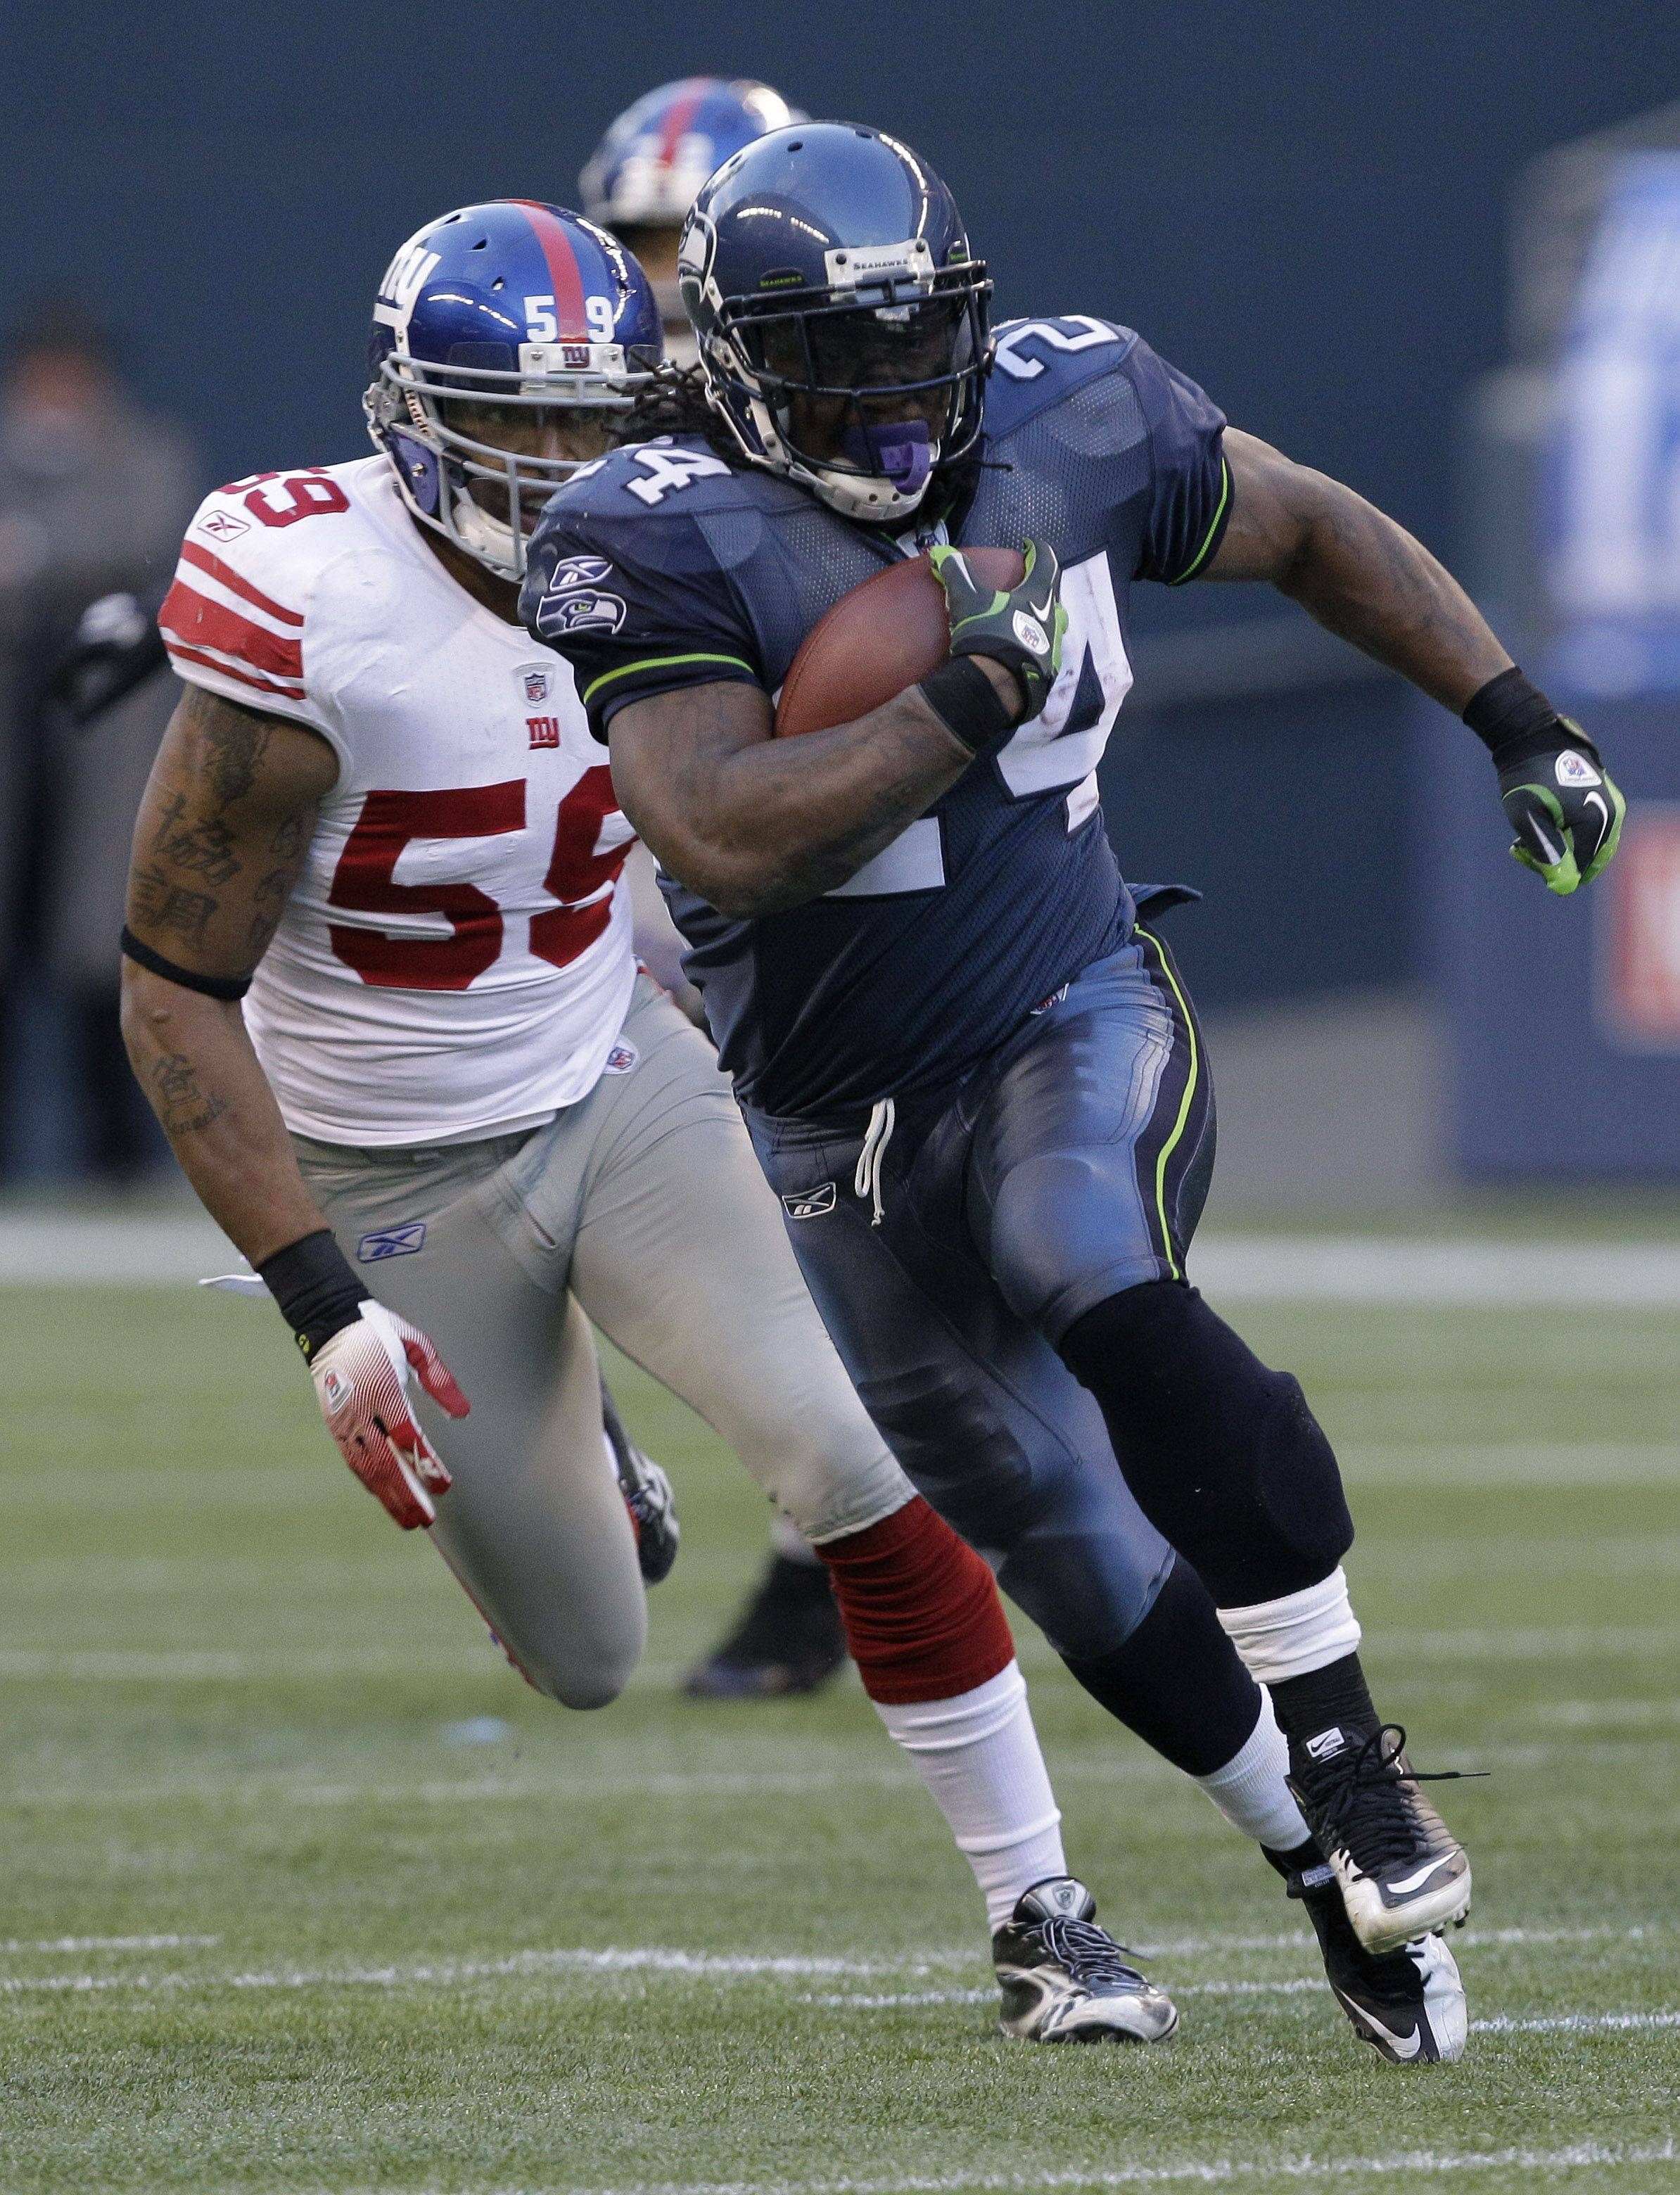 Seattle Seahawks Marshawn Lynch is a good bet to roll up the rushing yards against Arizona this week, says John Dietz.